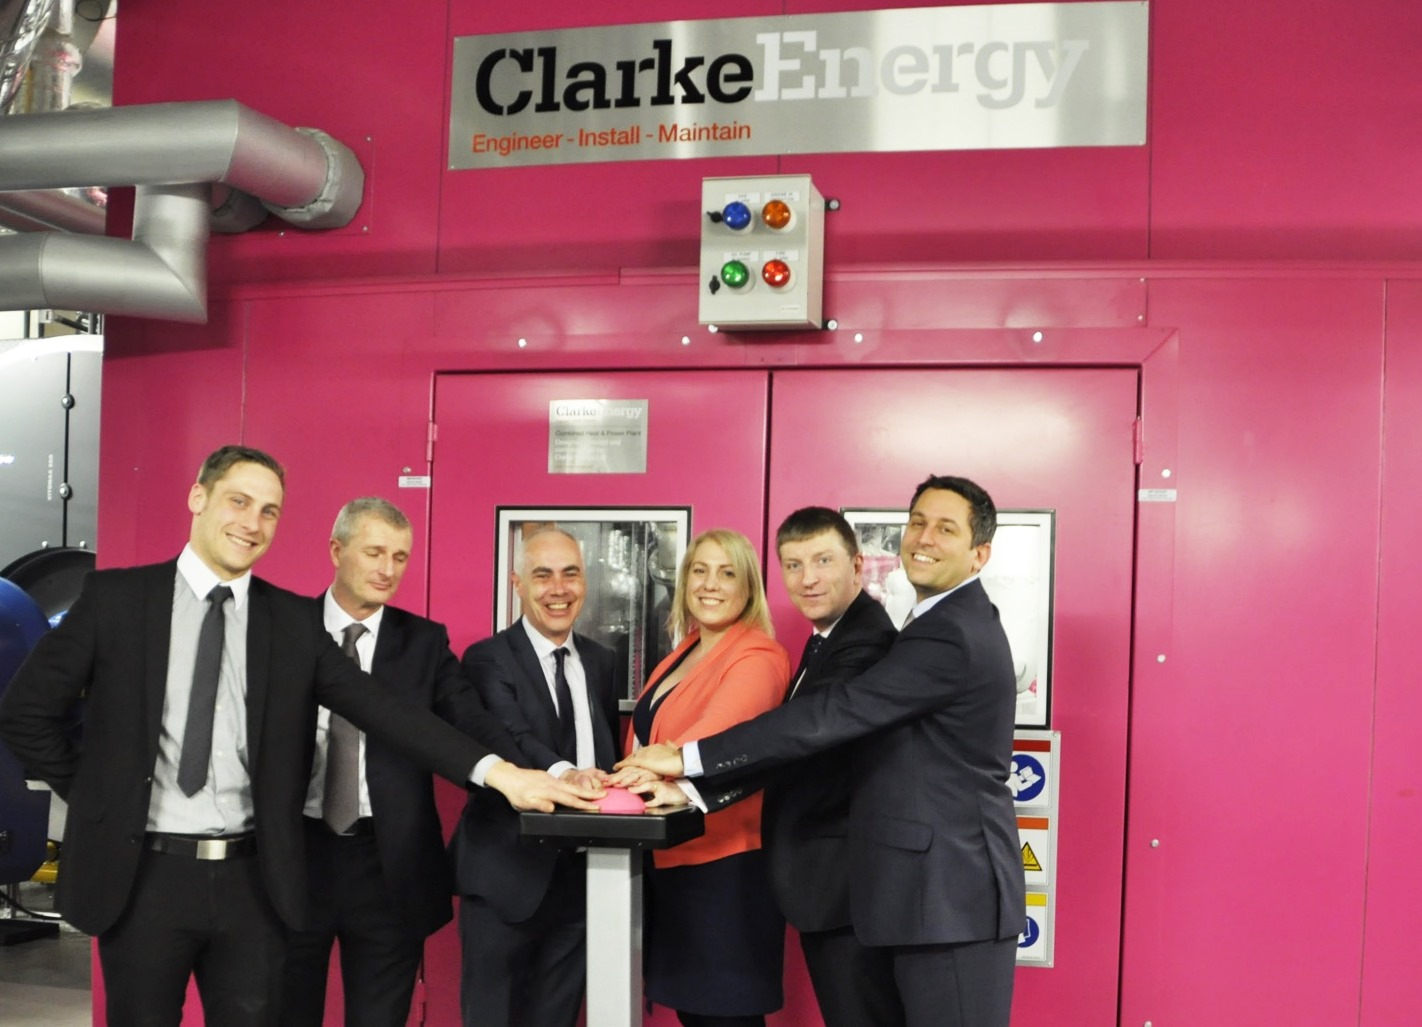 Team members from Clarke Energy, Skanska, Barts NHS Trust, GE and SDCL Switch on Trigeneration Engine